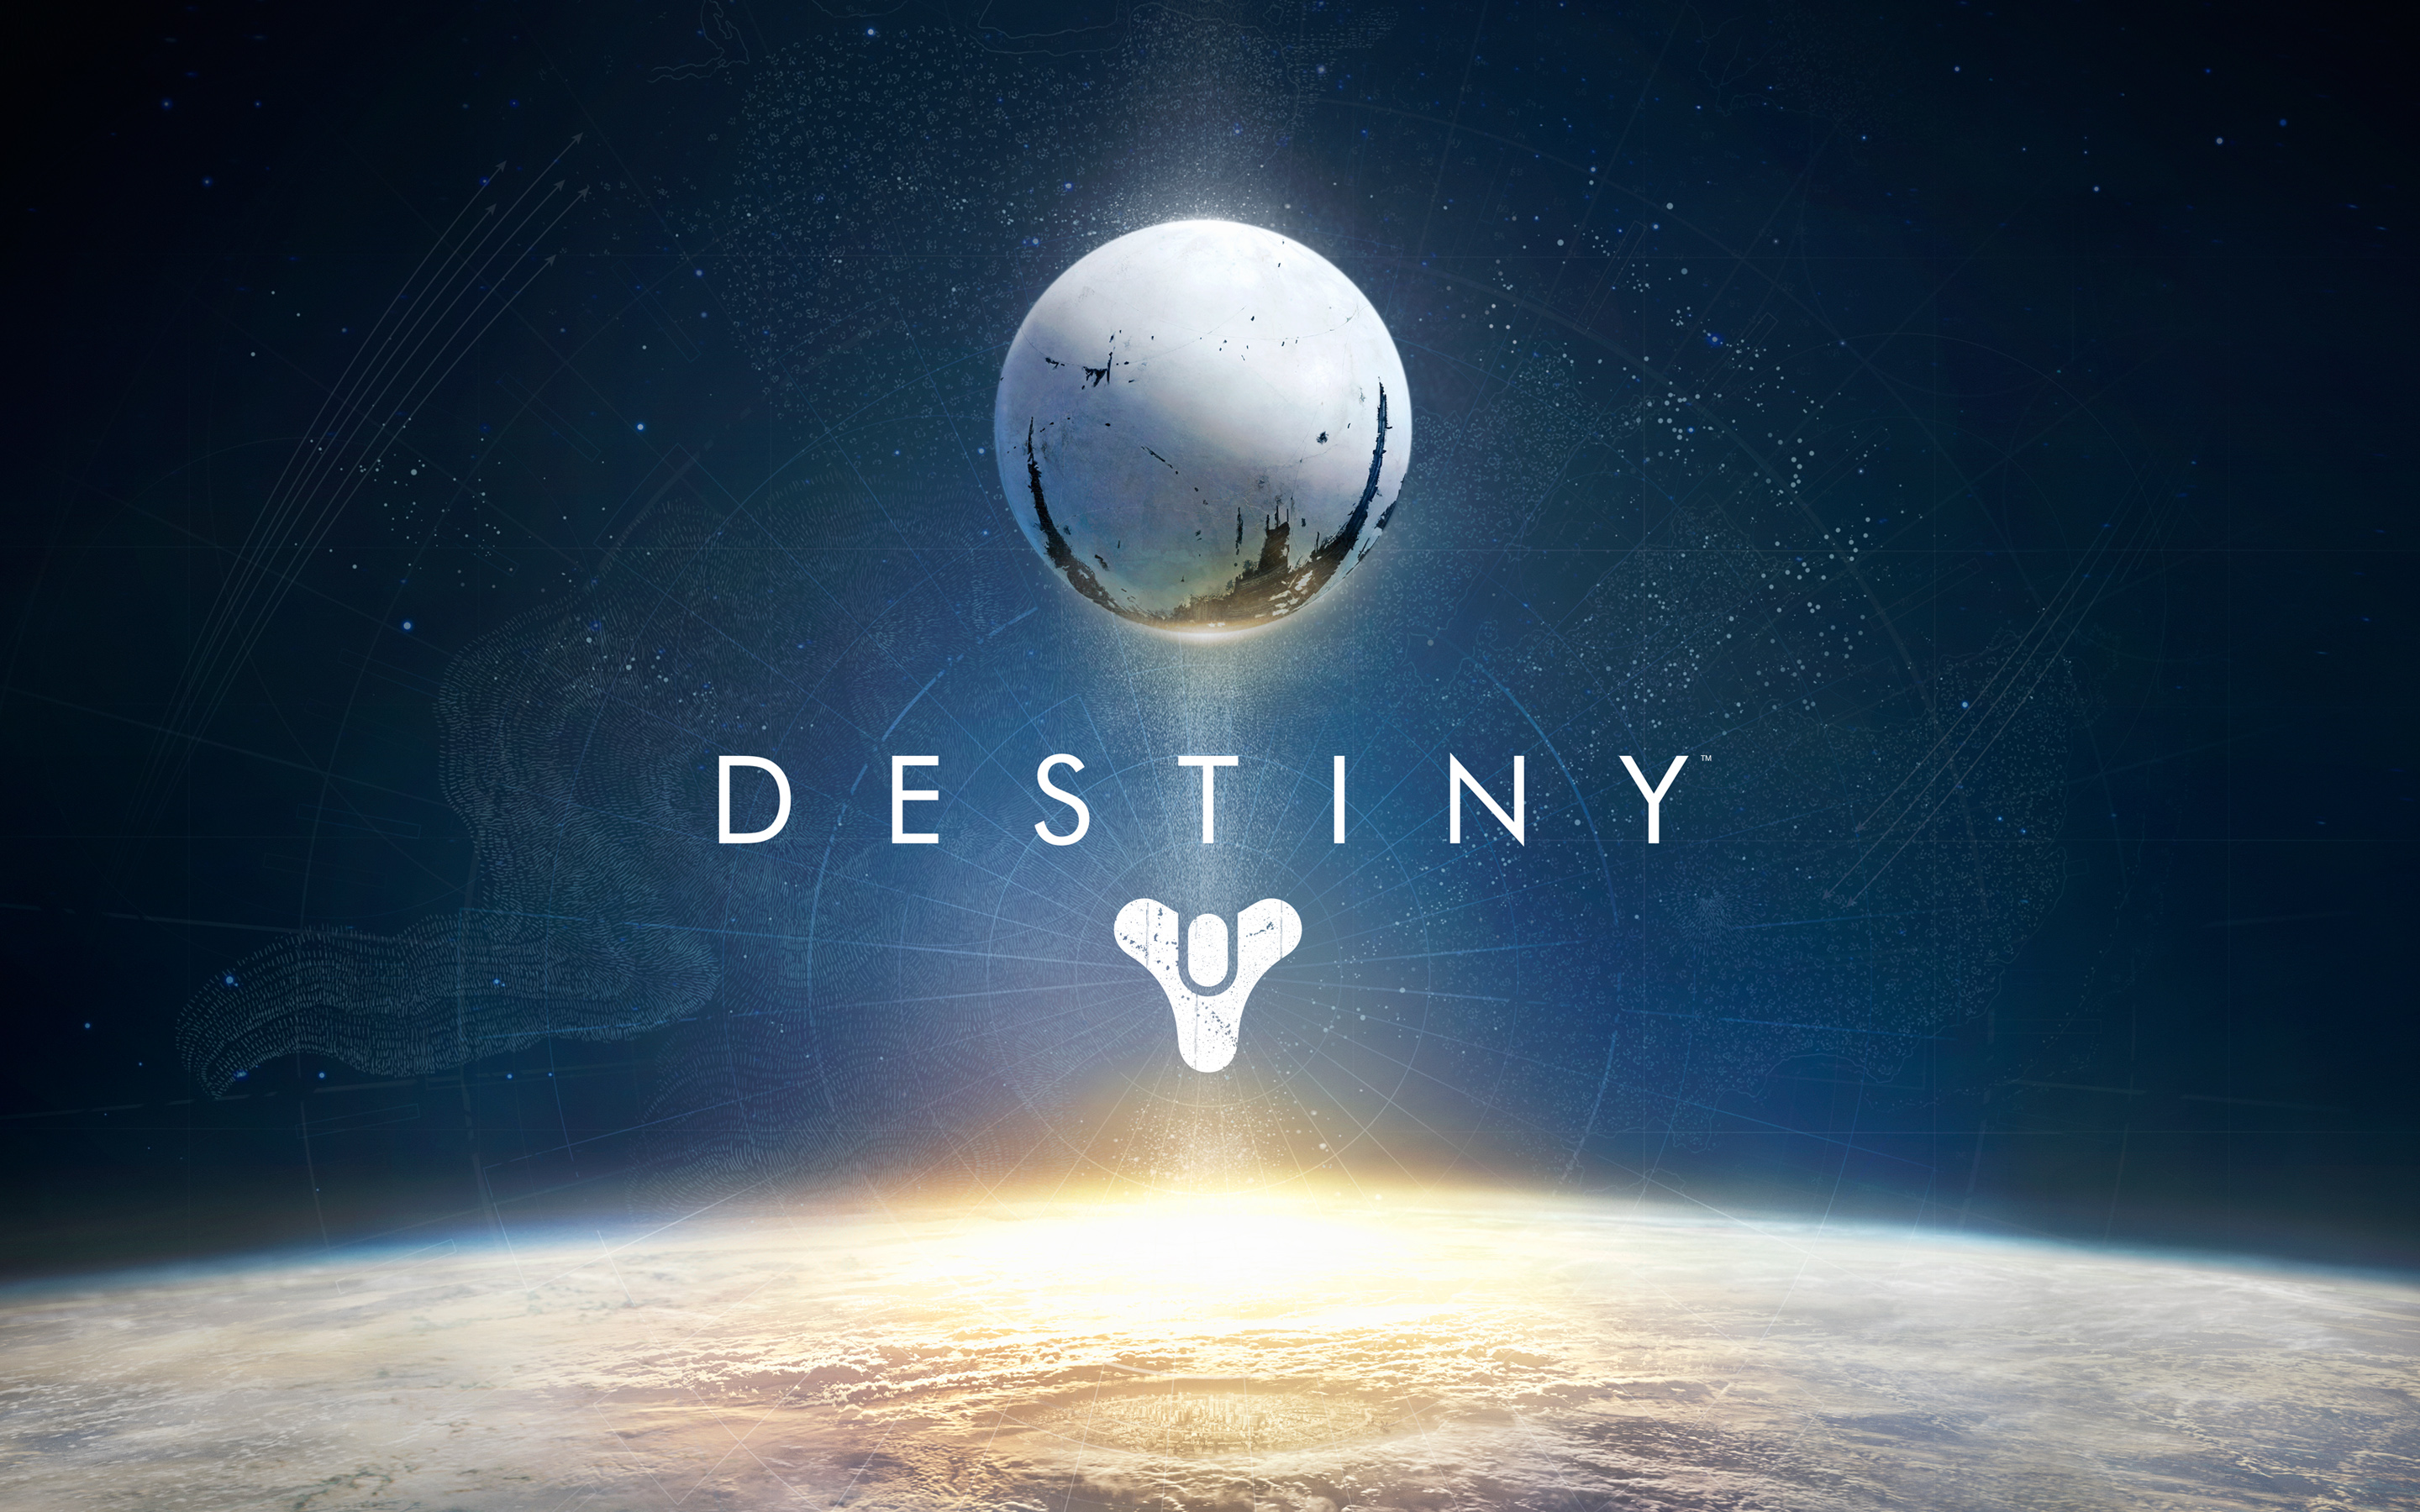 Destiny Backgrounds Hd 109 images in Collection Page 2 2880x1800